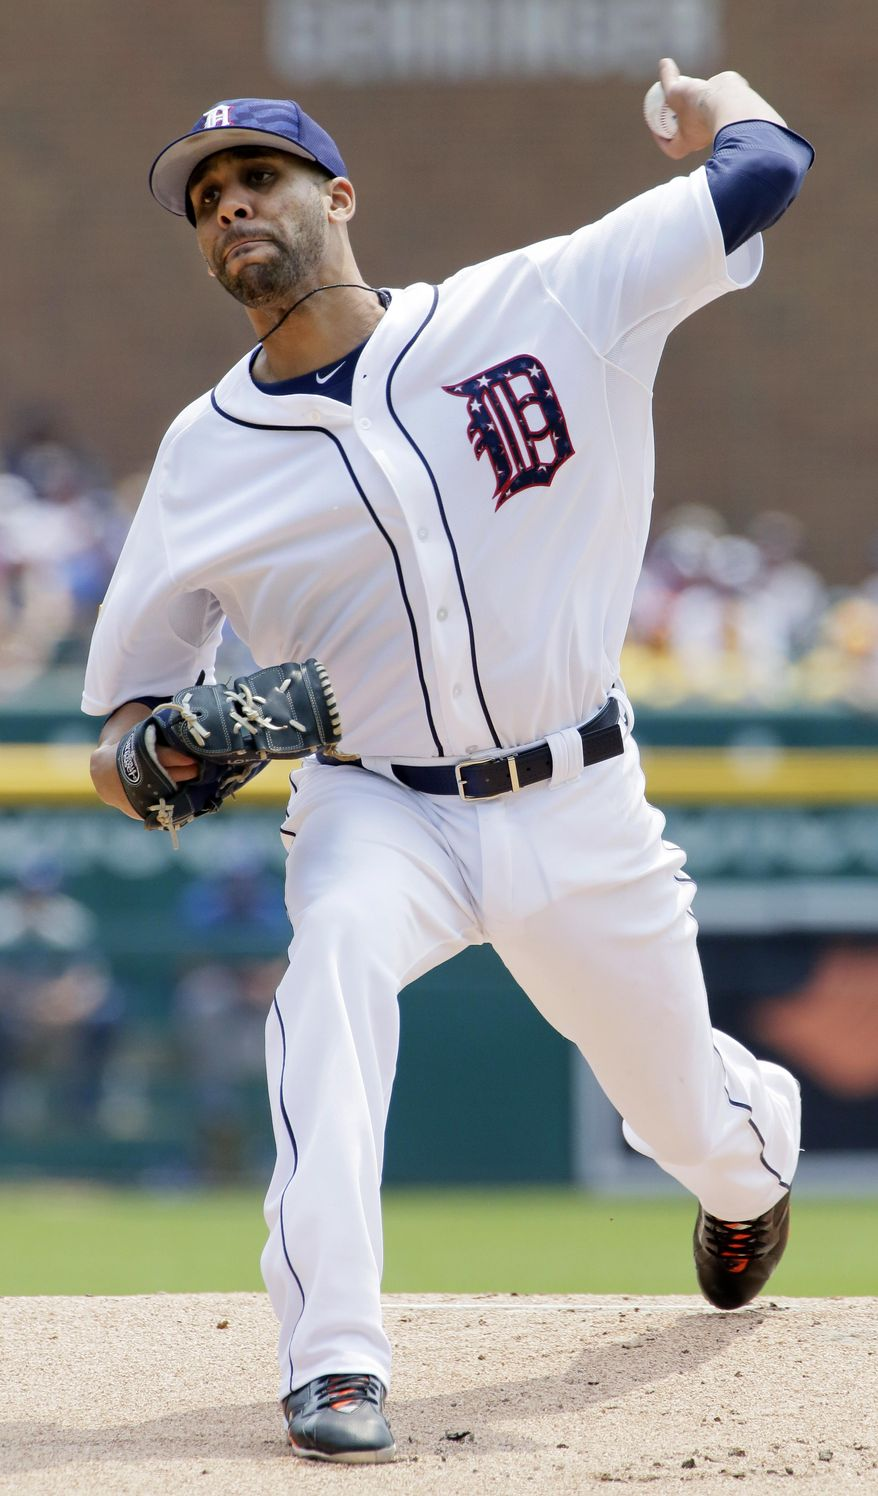 Detroit Tigers pitcher David Price delivers against the Toronto Blue Jays during the first inning of a baseball game Saturday, July 4, 2015, in Detroit. (AP Photo/Duane Burleson)